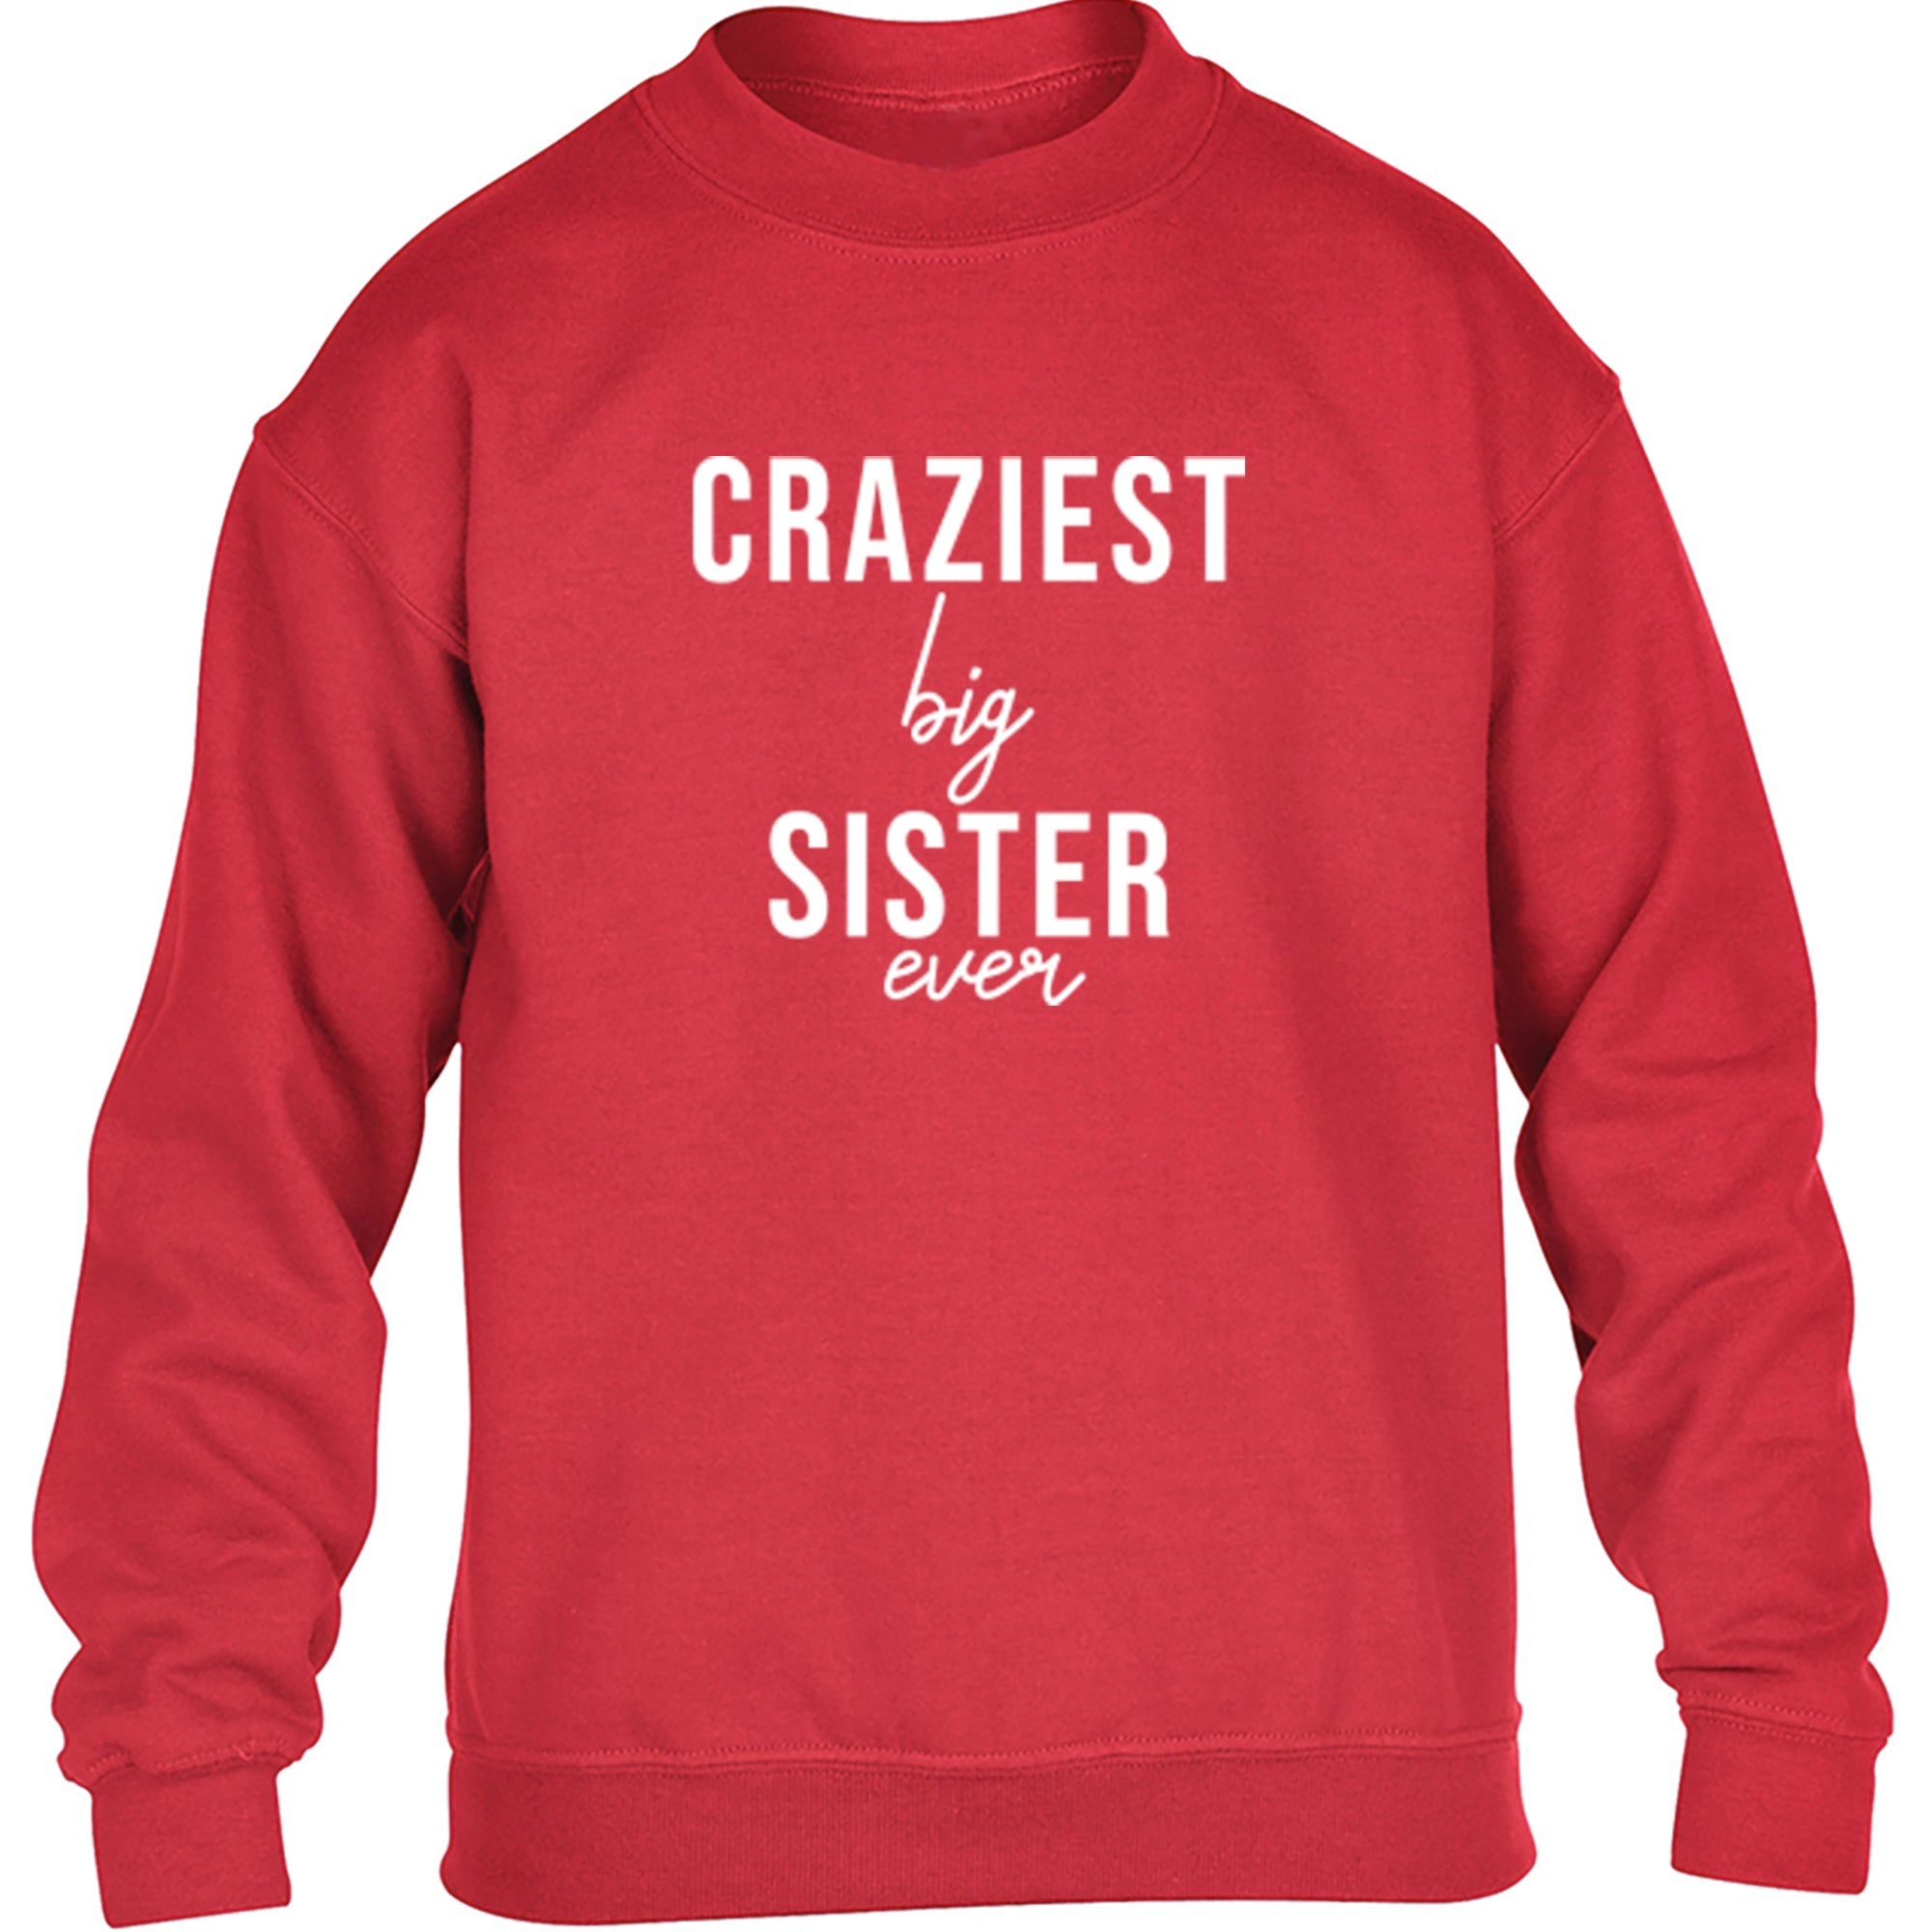 Craziest Big Sister Ever Childrens Ages 3/4-12/14 Unisex Jumper S0512 - Illustrated Identity Ltd.